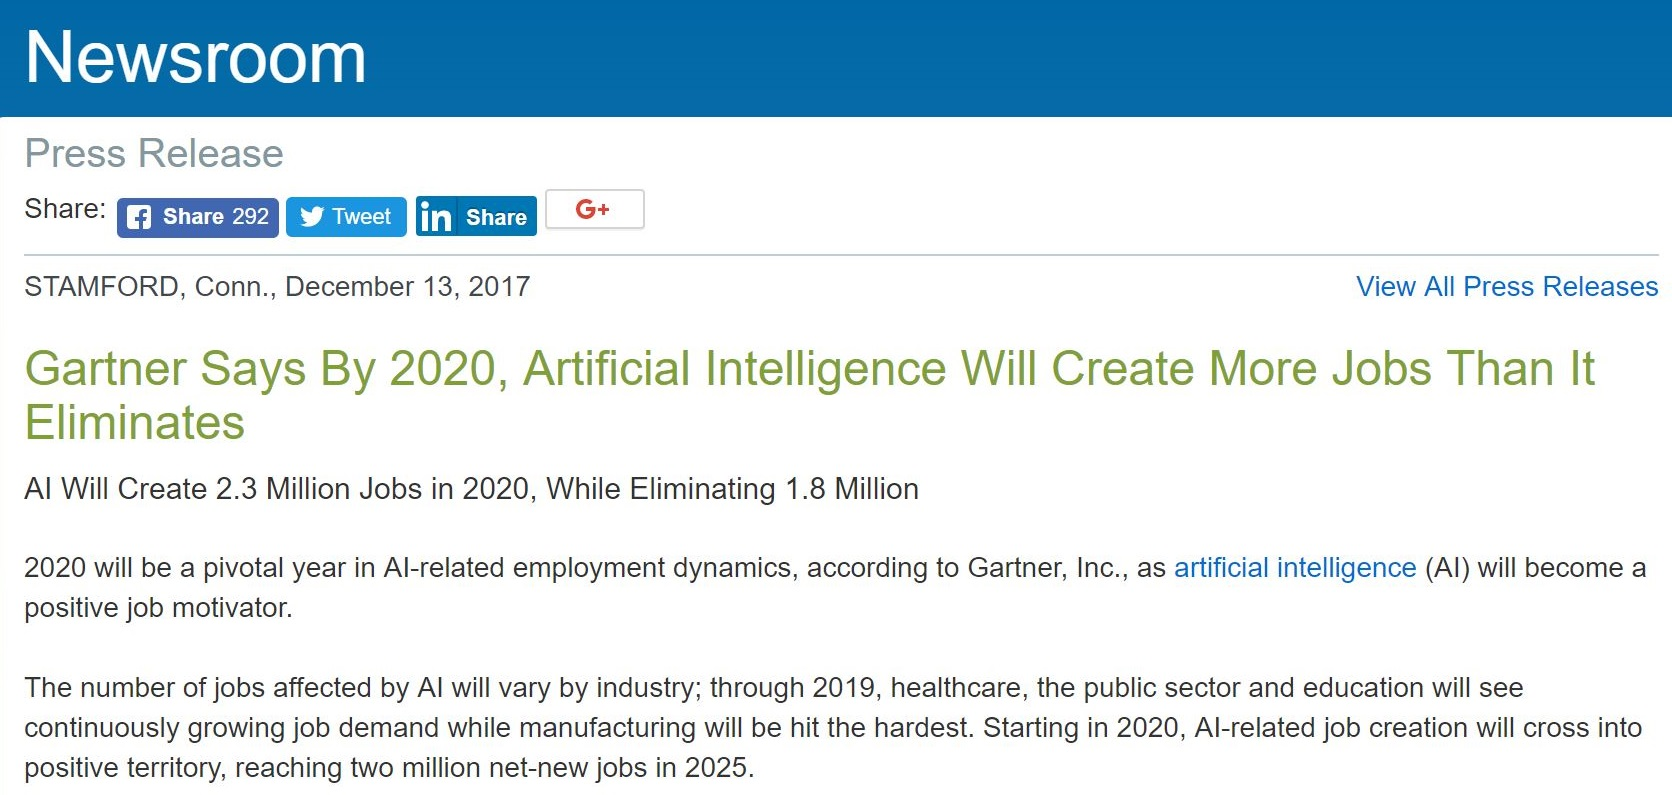 Gartner fails spectacularly with its 180 degree flip on the